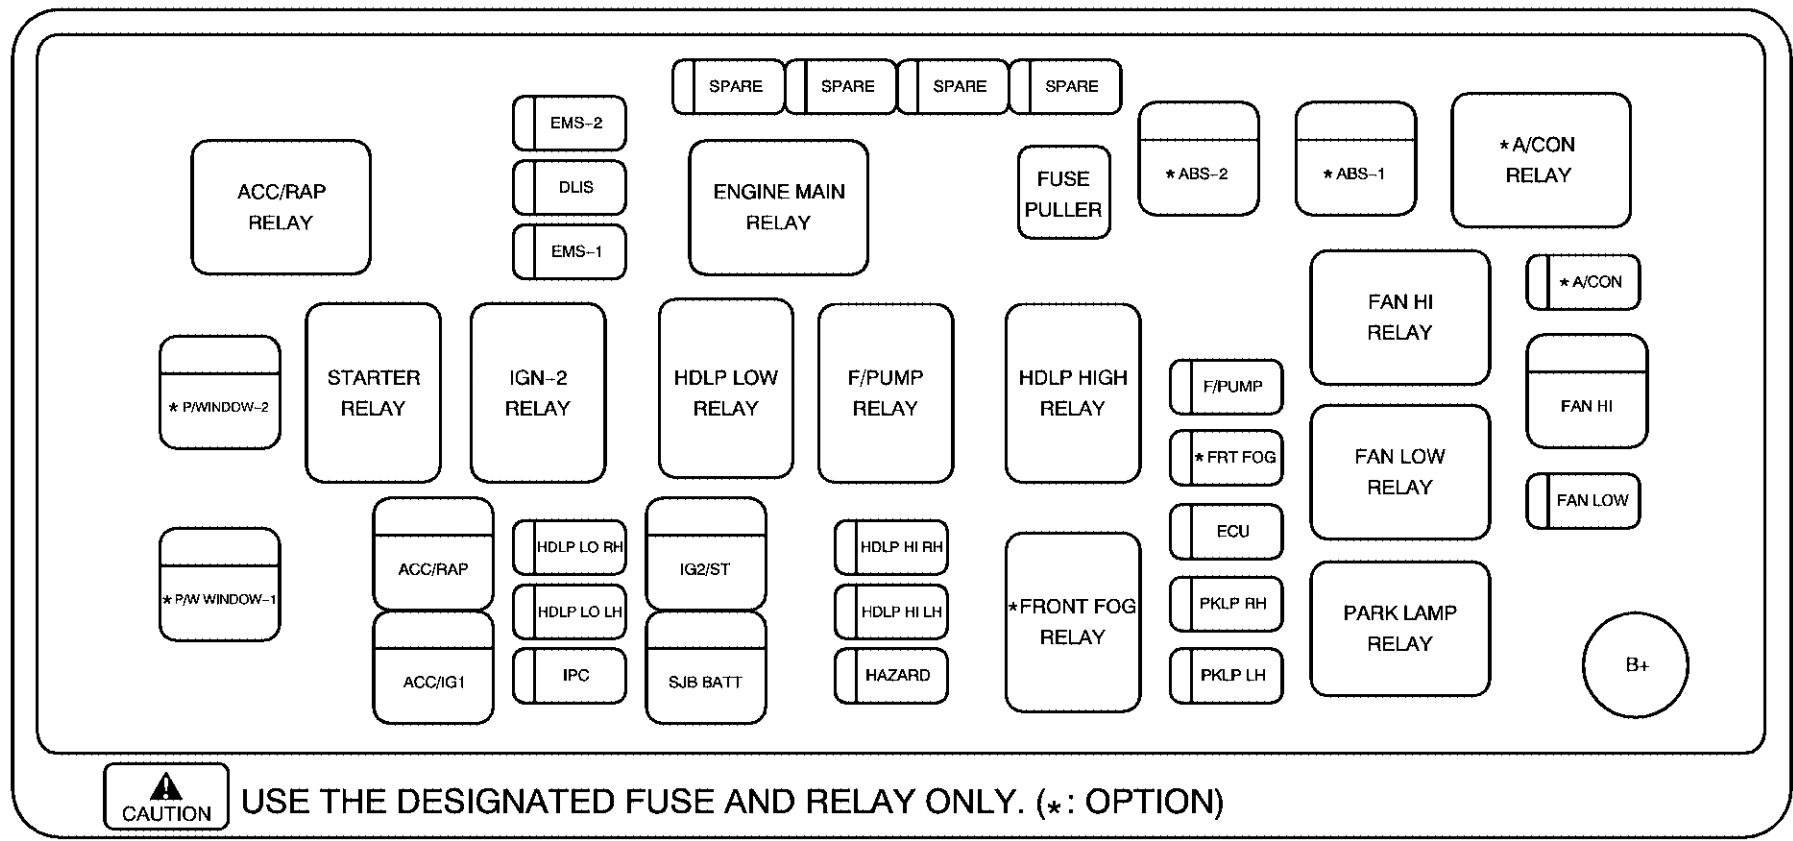 small resolution of 2004 chevy aveo fuse diagram wiring diagram used 2007 chevy aveo stereo wiring diagram 2004 chevy